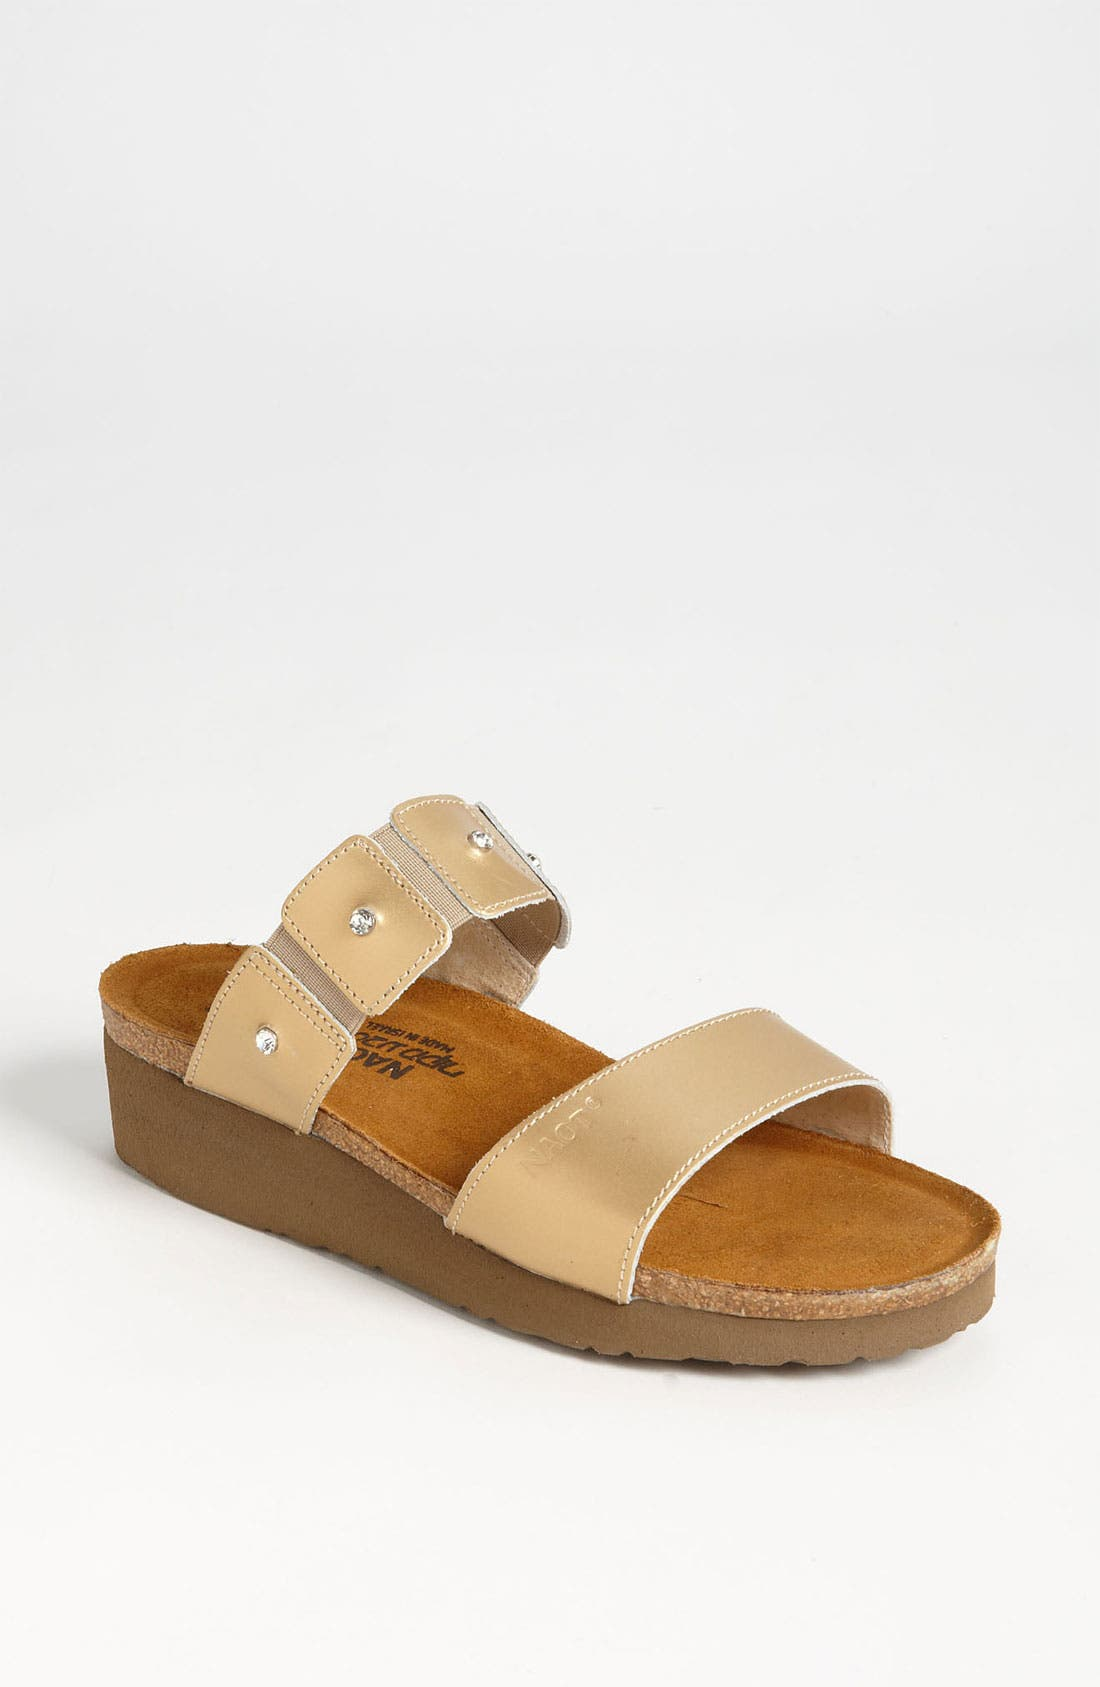 Main Image - Naot 'Ashley' Sandal